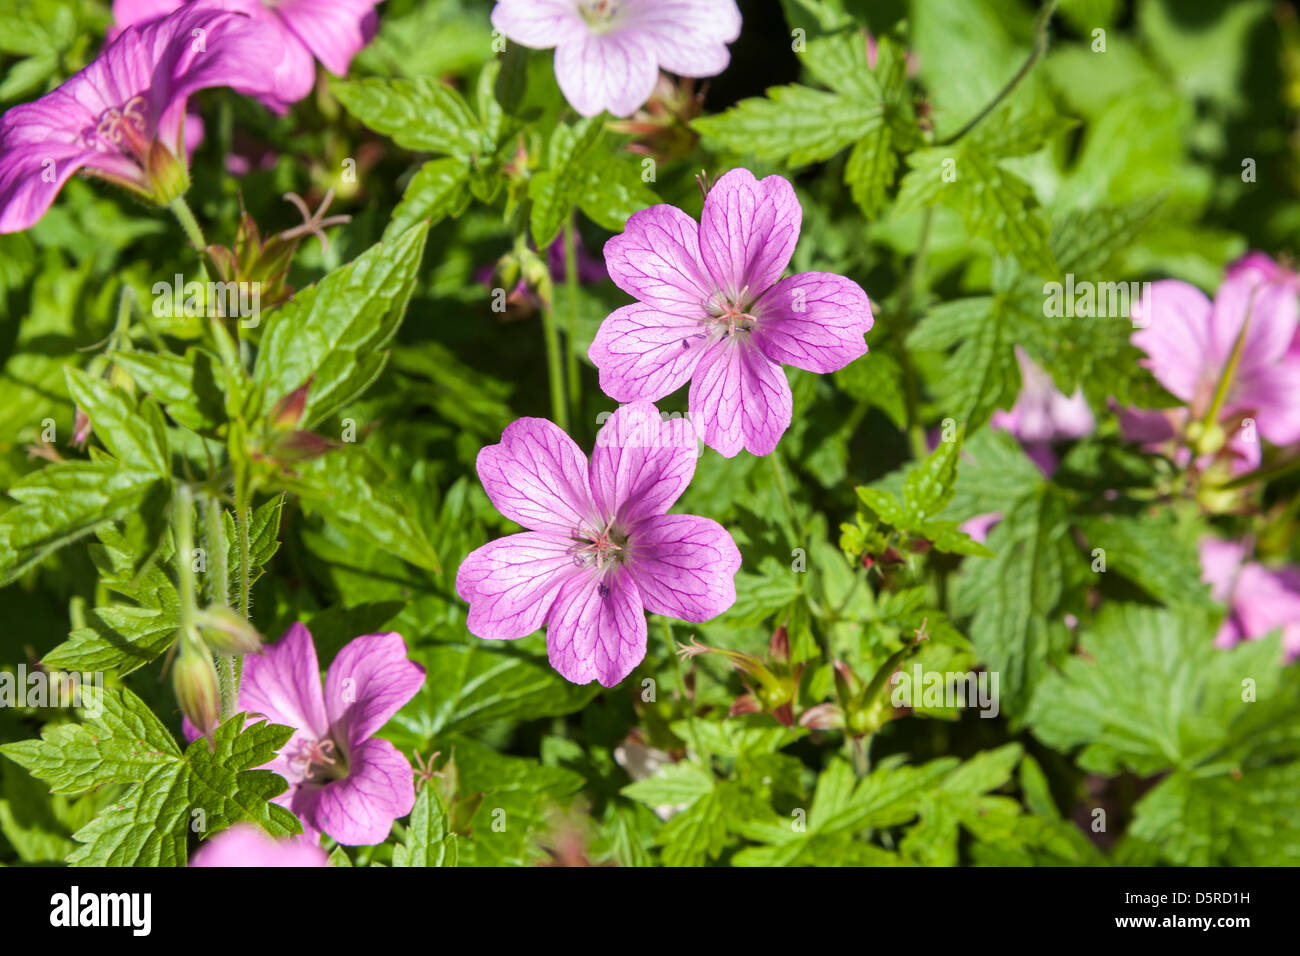 GERANIUM FLOWERS IN DOMESTIC GARDEN UK - Stock Image